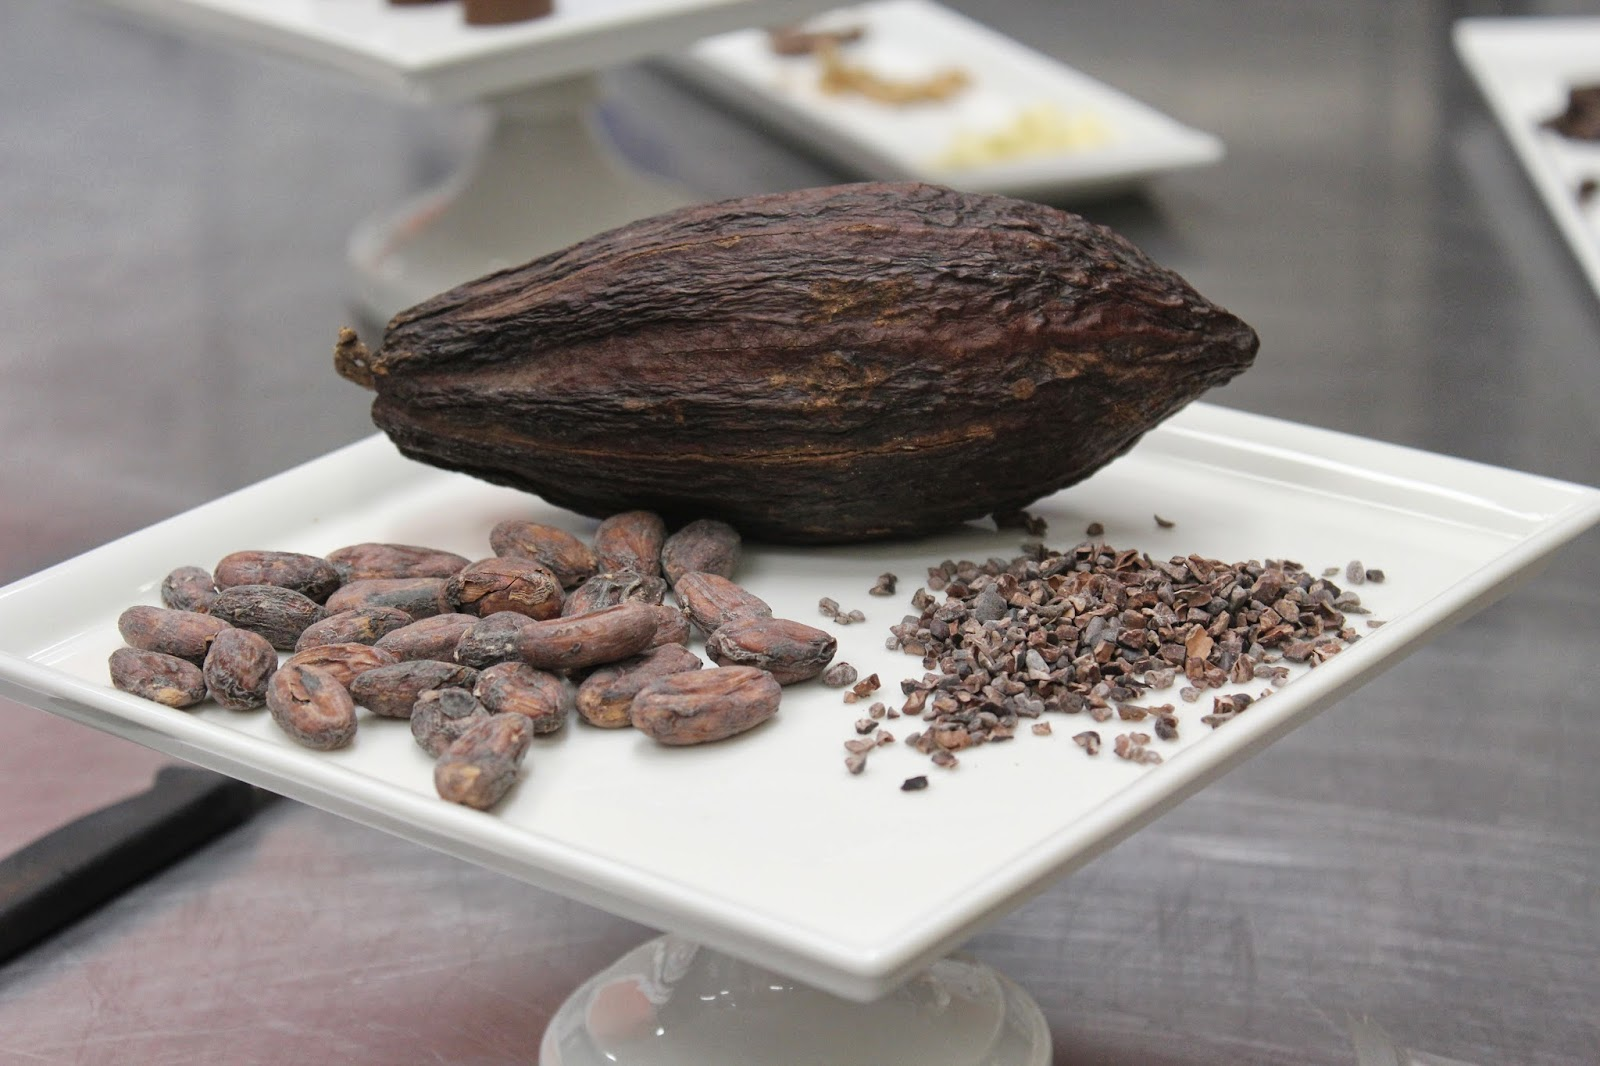 Cocoa pod and cacao nibs